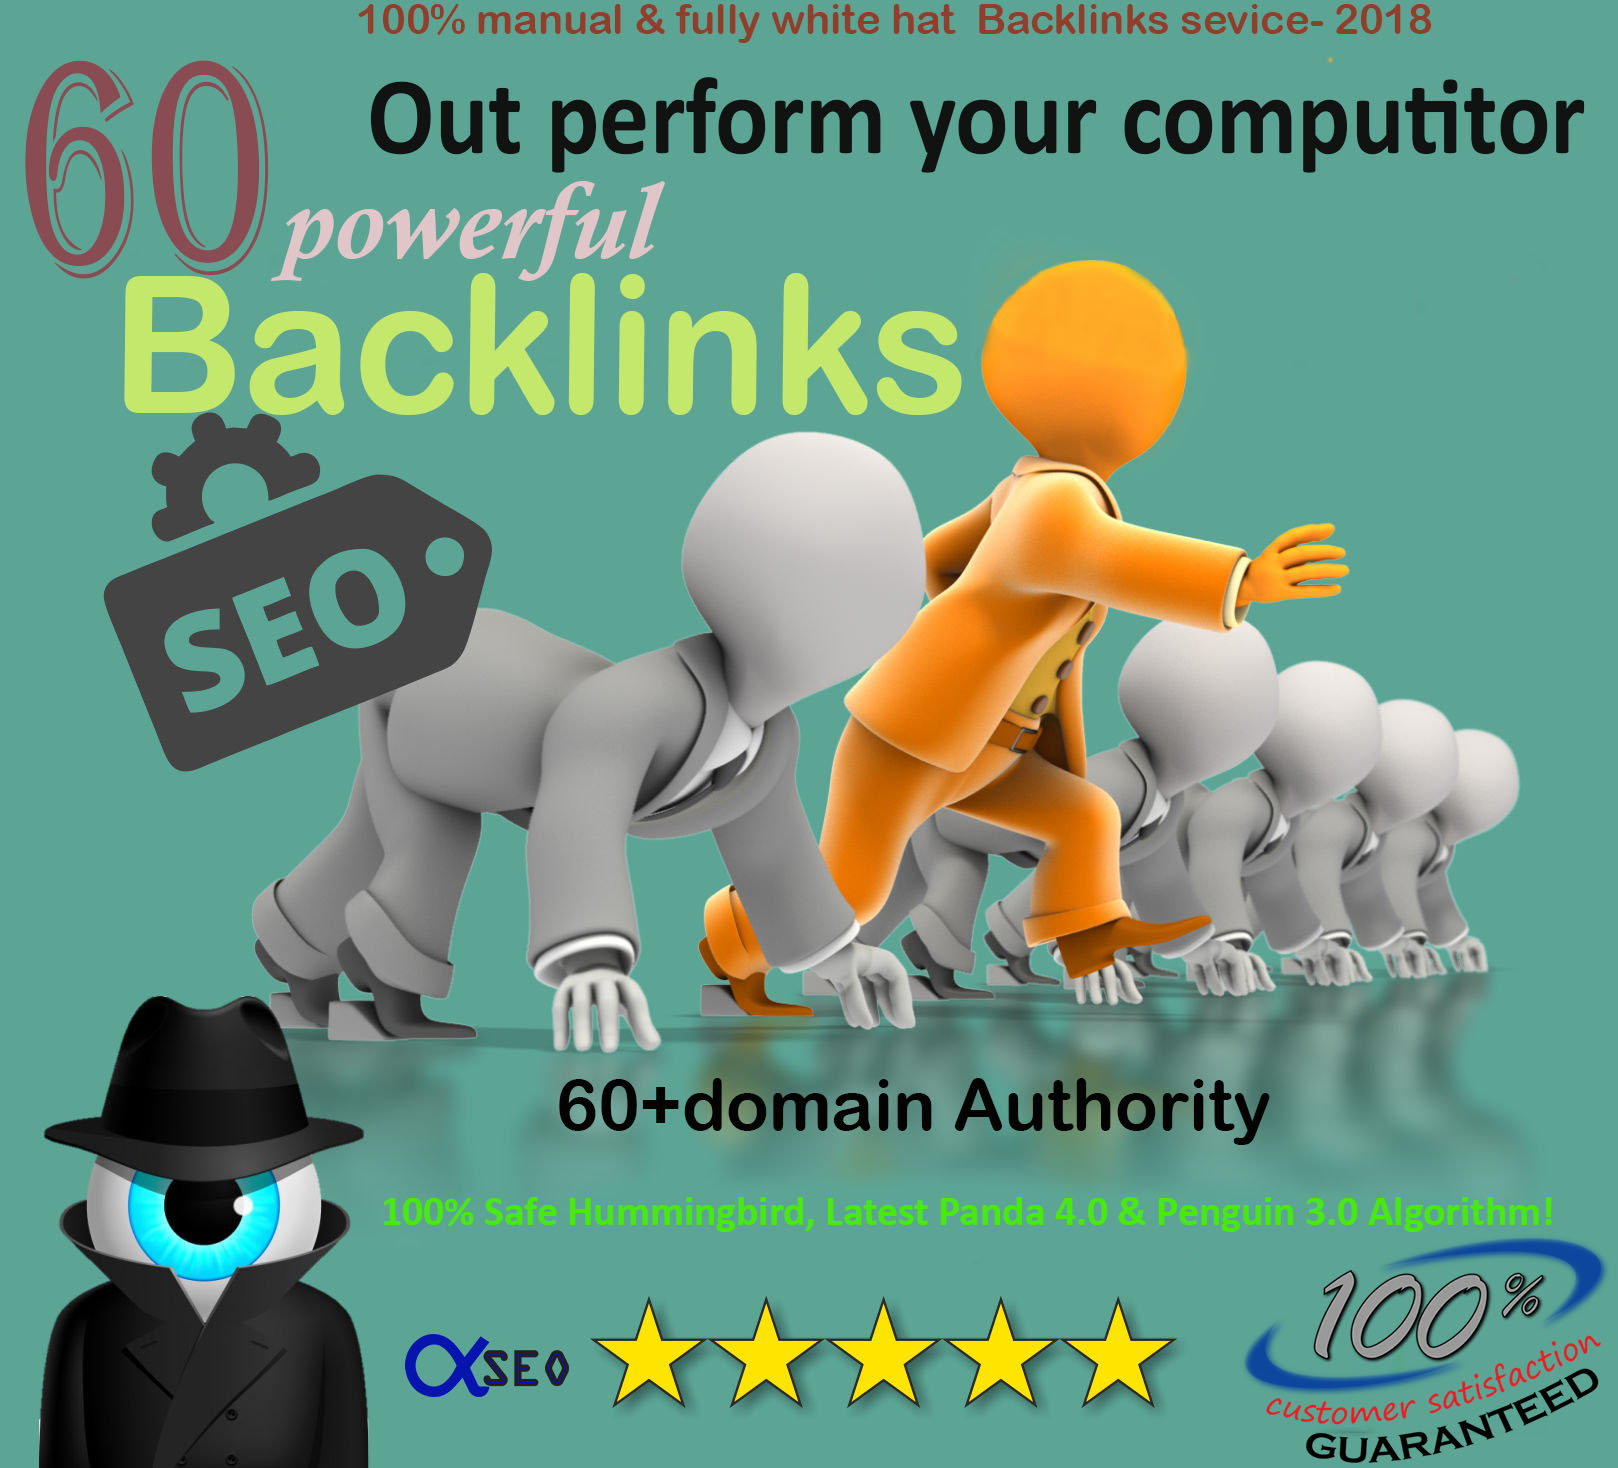 Latest 65 PR9 80+DA Safe SEO Powerful Backlinks Incre...